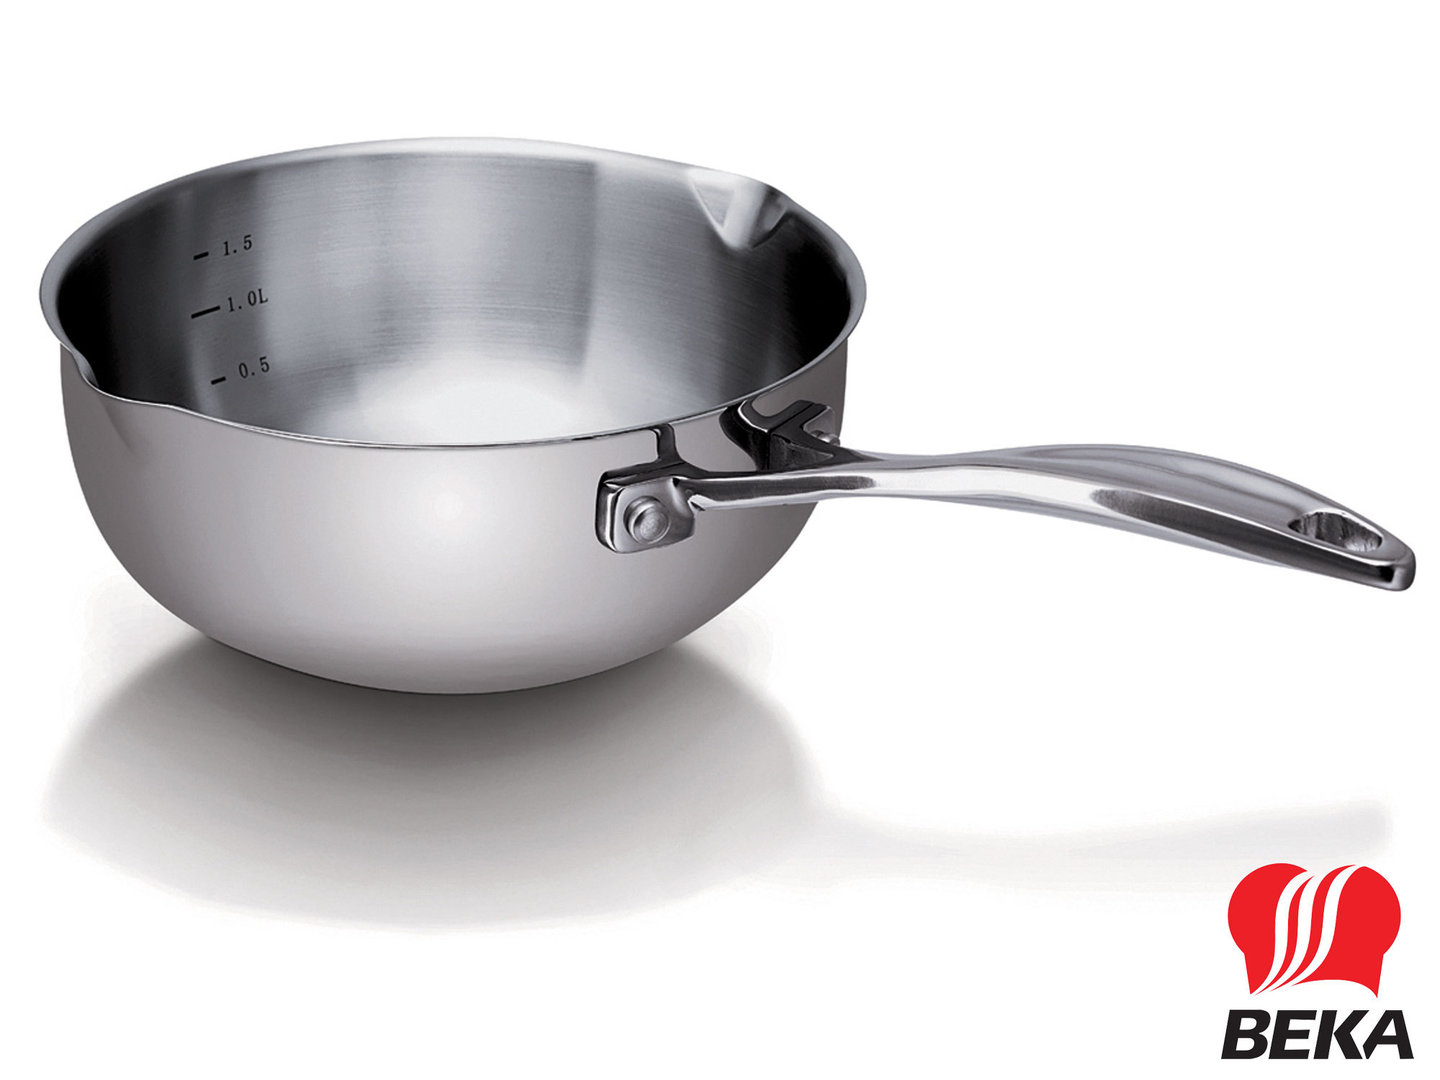 BEKA conical saucepan CHEF 20 cm stainless steel induction